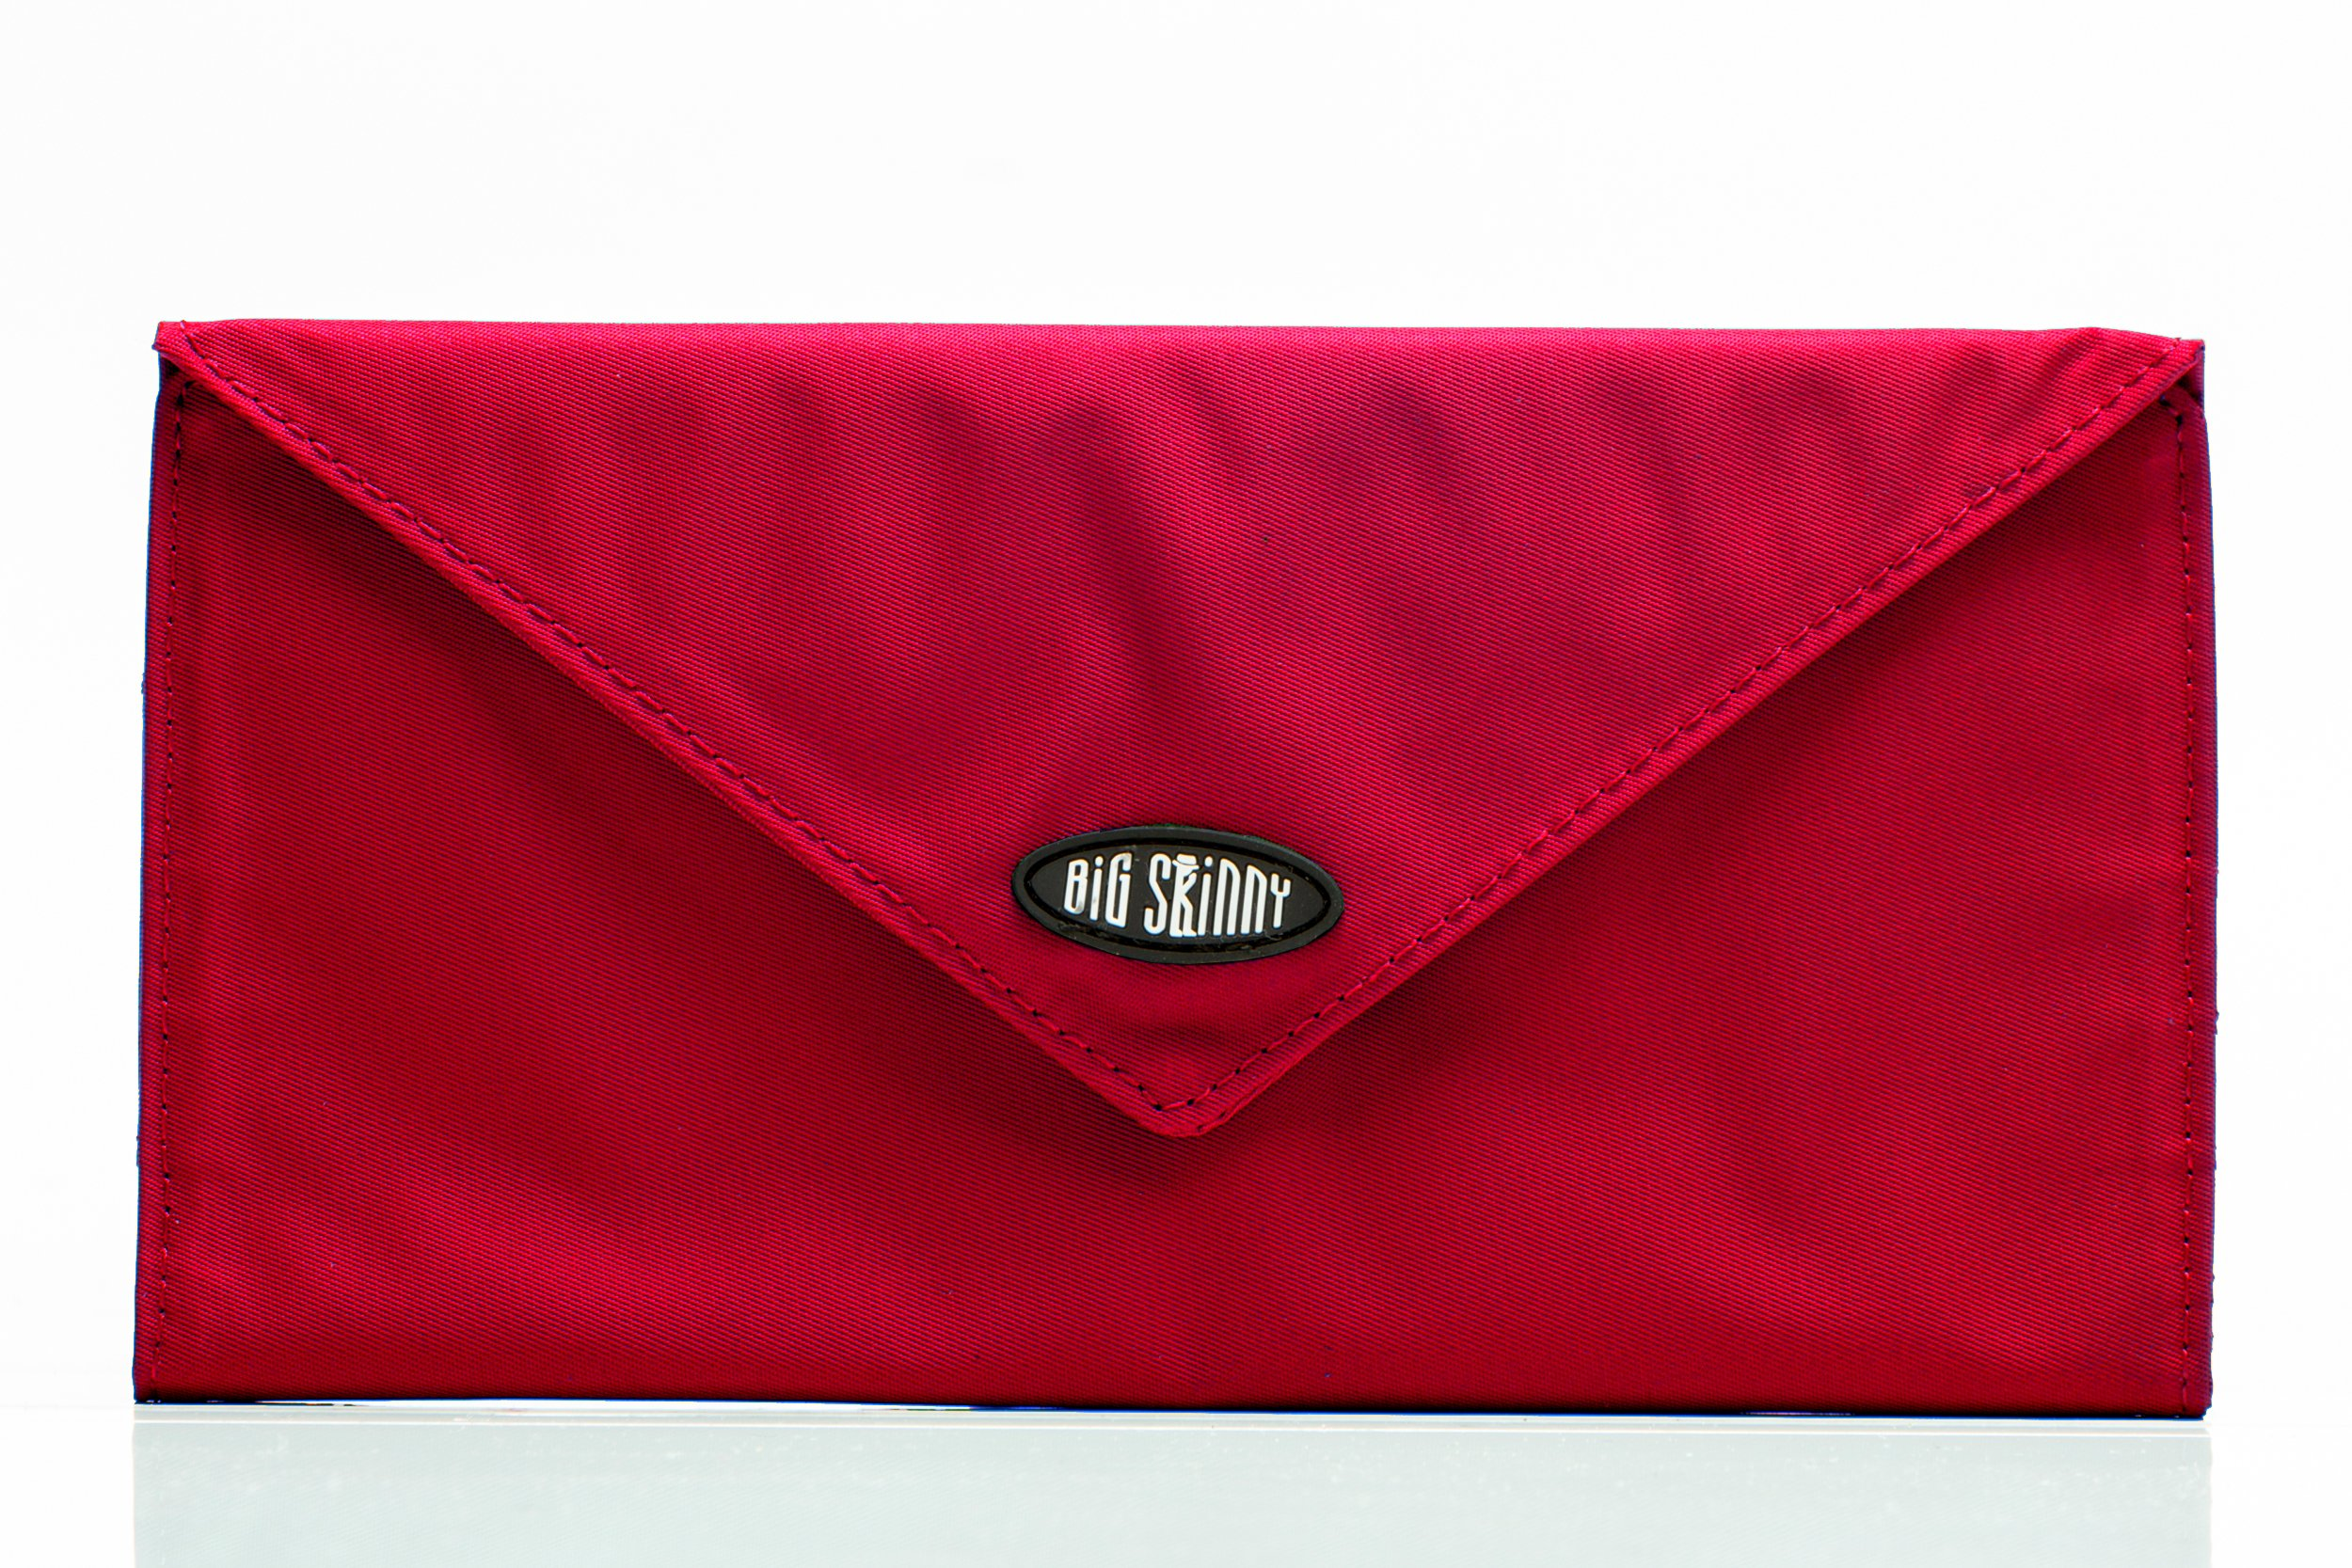 Big Skinny Slimvelope Tri-Fold Checkbook, Holds Up to 40 Cards, Red